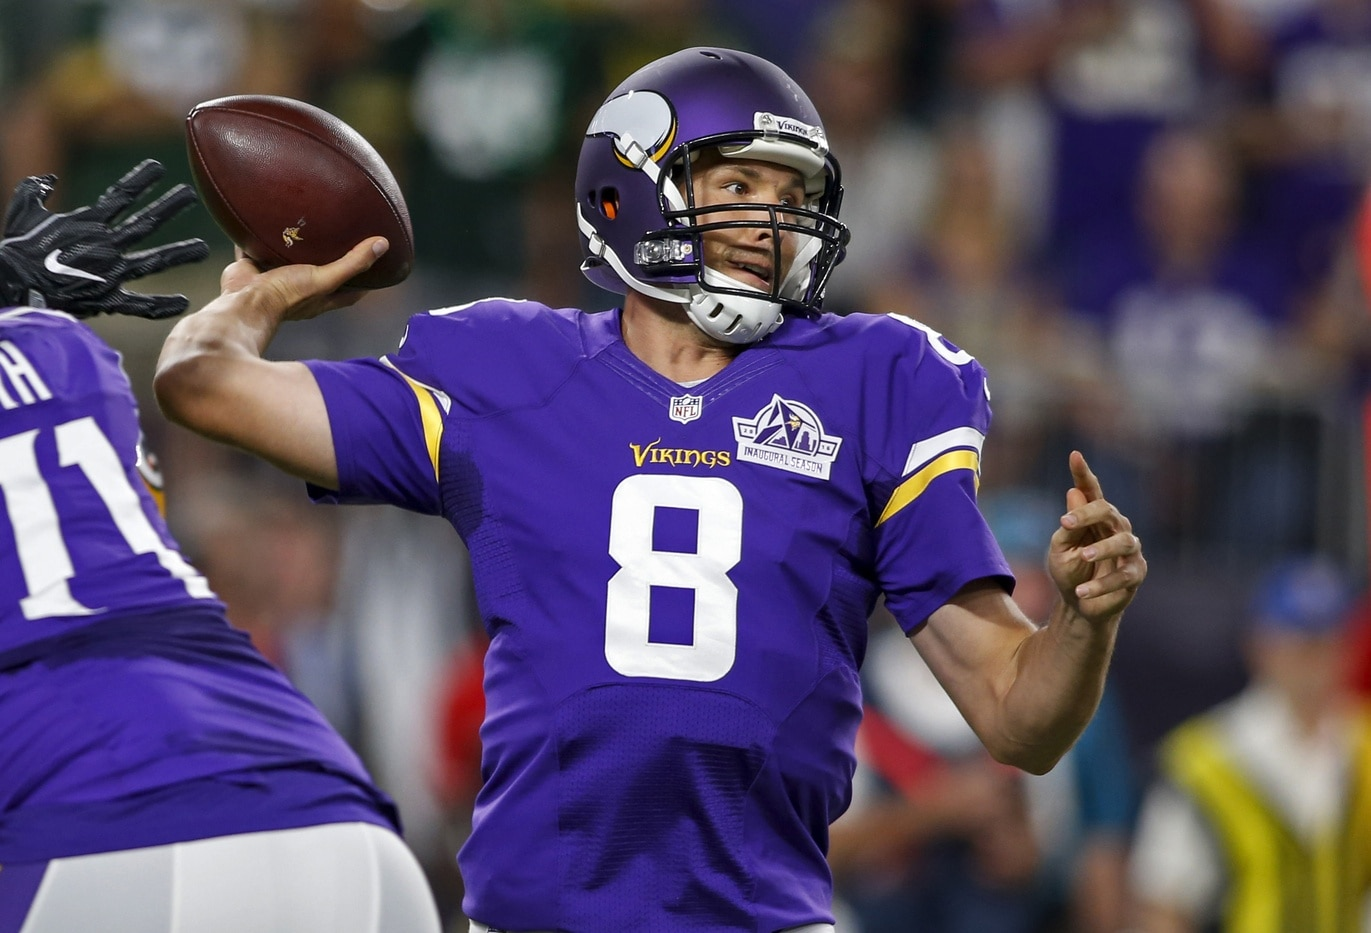 Teddy bridgewater injury update vikings expect qb to miss 2017 too report says sporting news - Minnesota S Starting Quarterback Sam Bradford Is Signed Only Through The 2017 Season